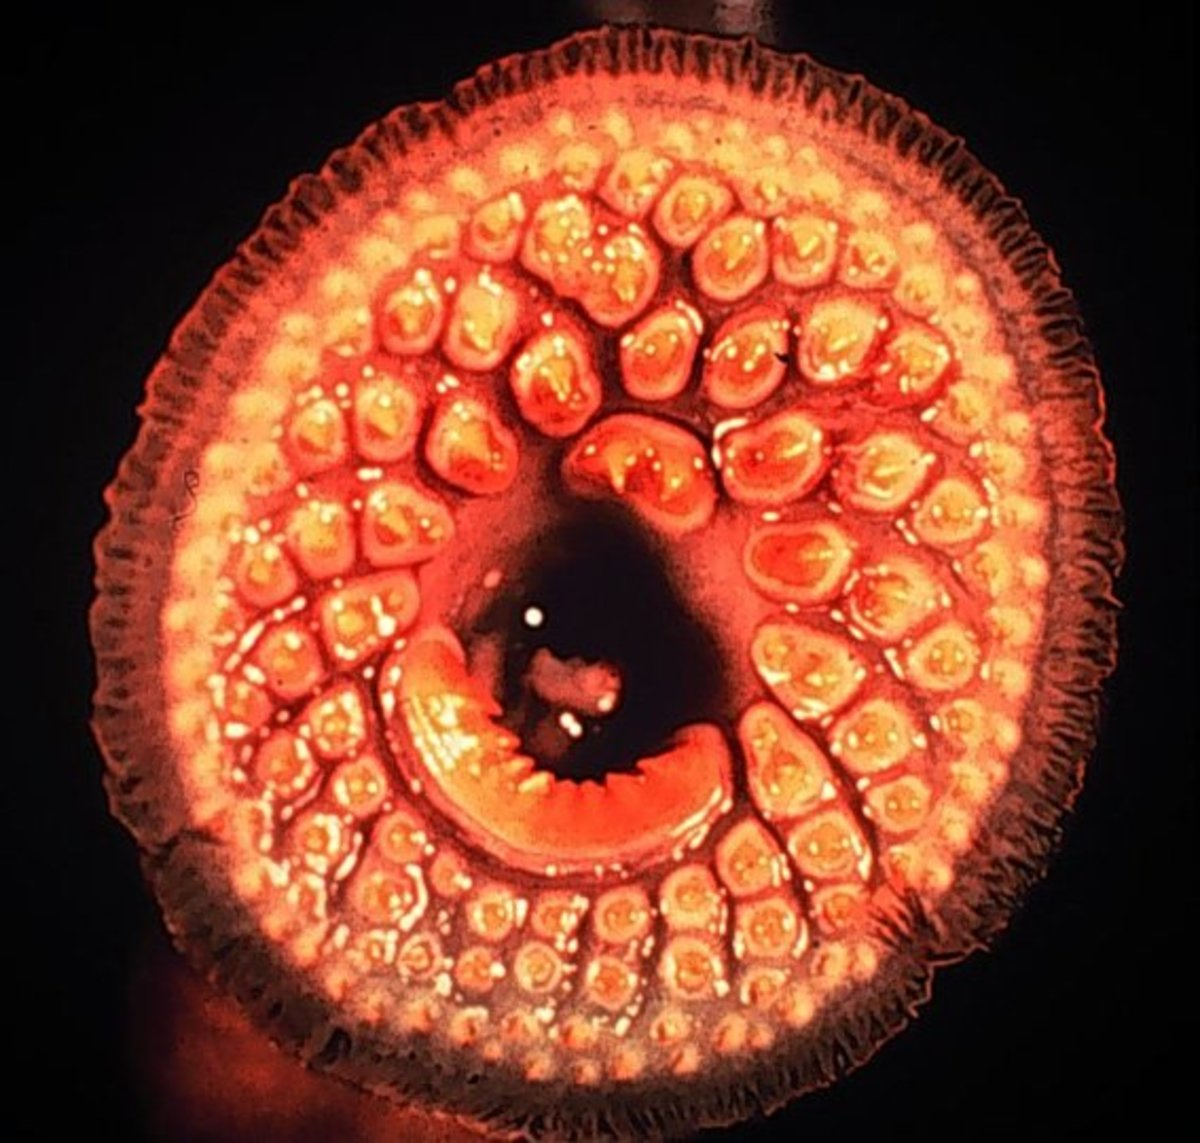 The sea lamprey is a horrifying creature, but does it attack humans?